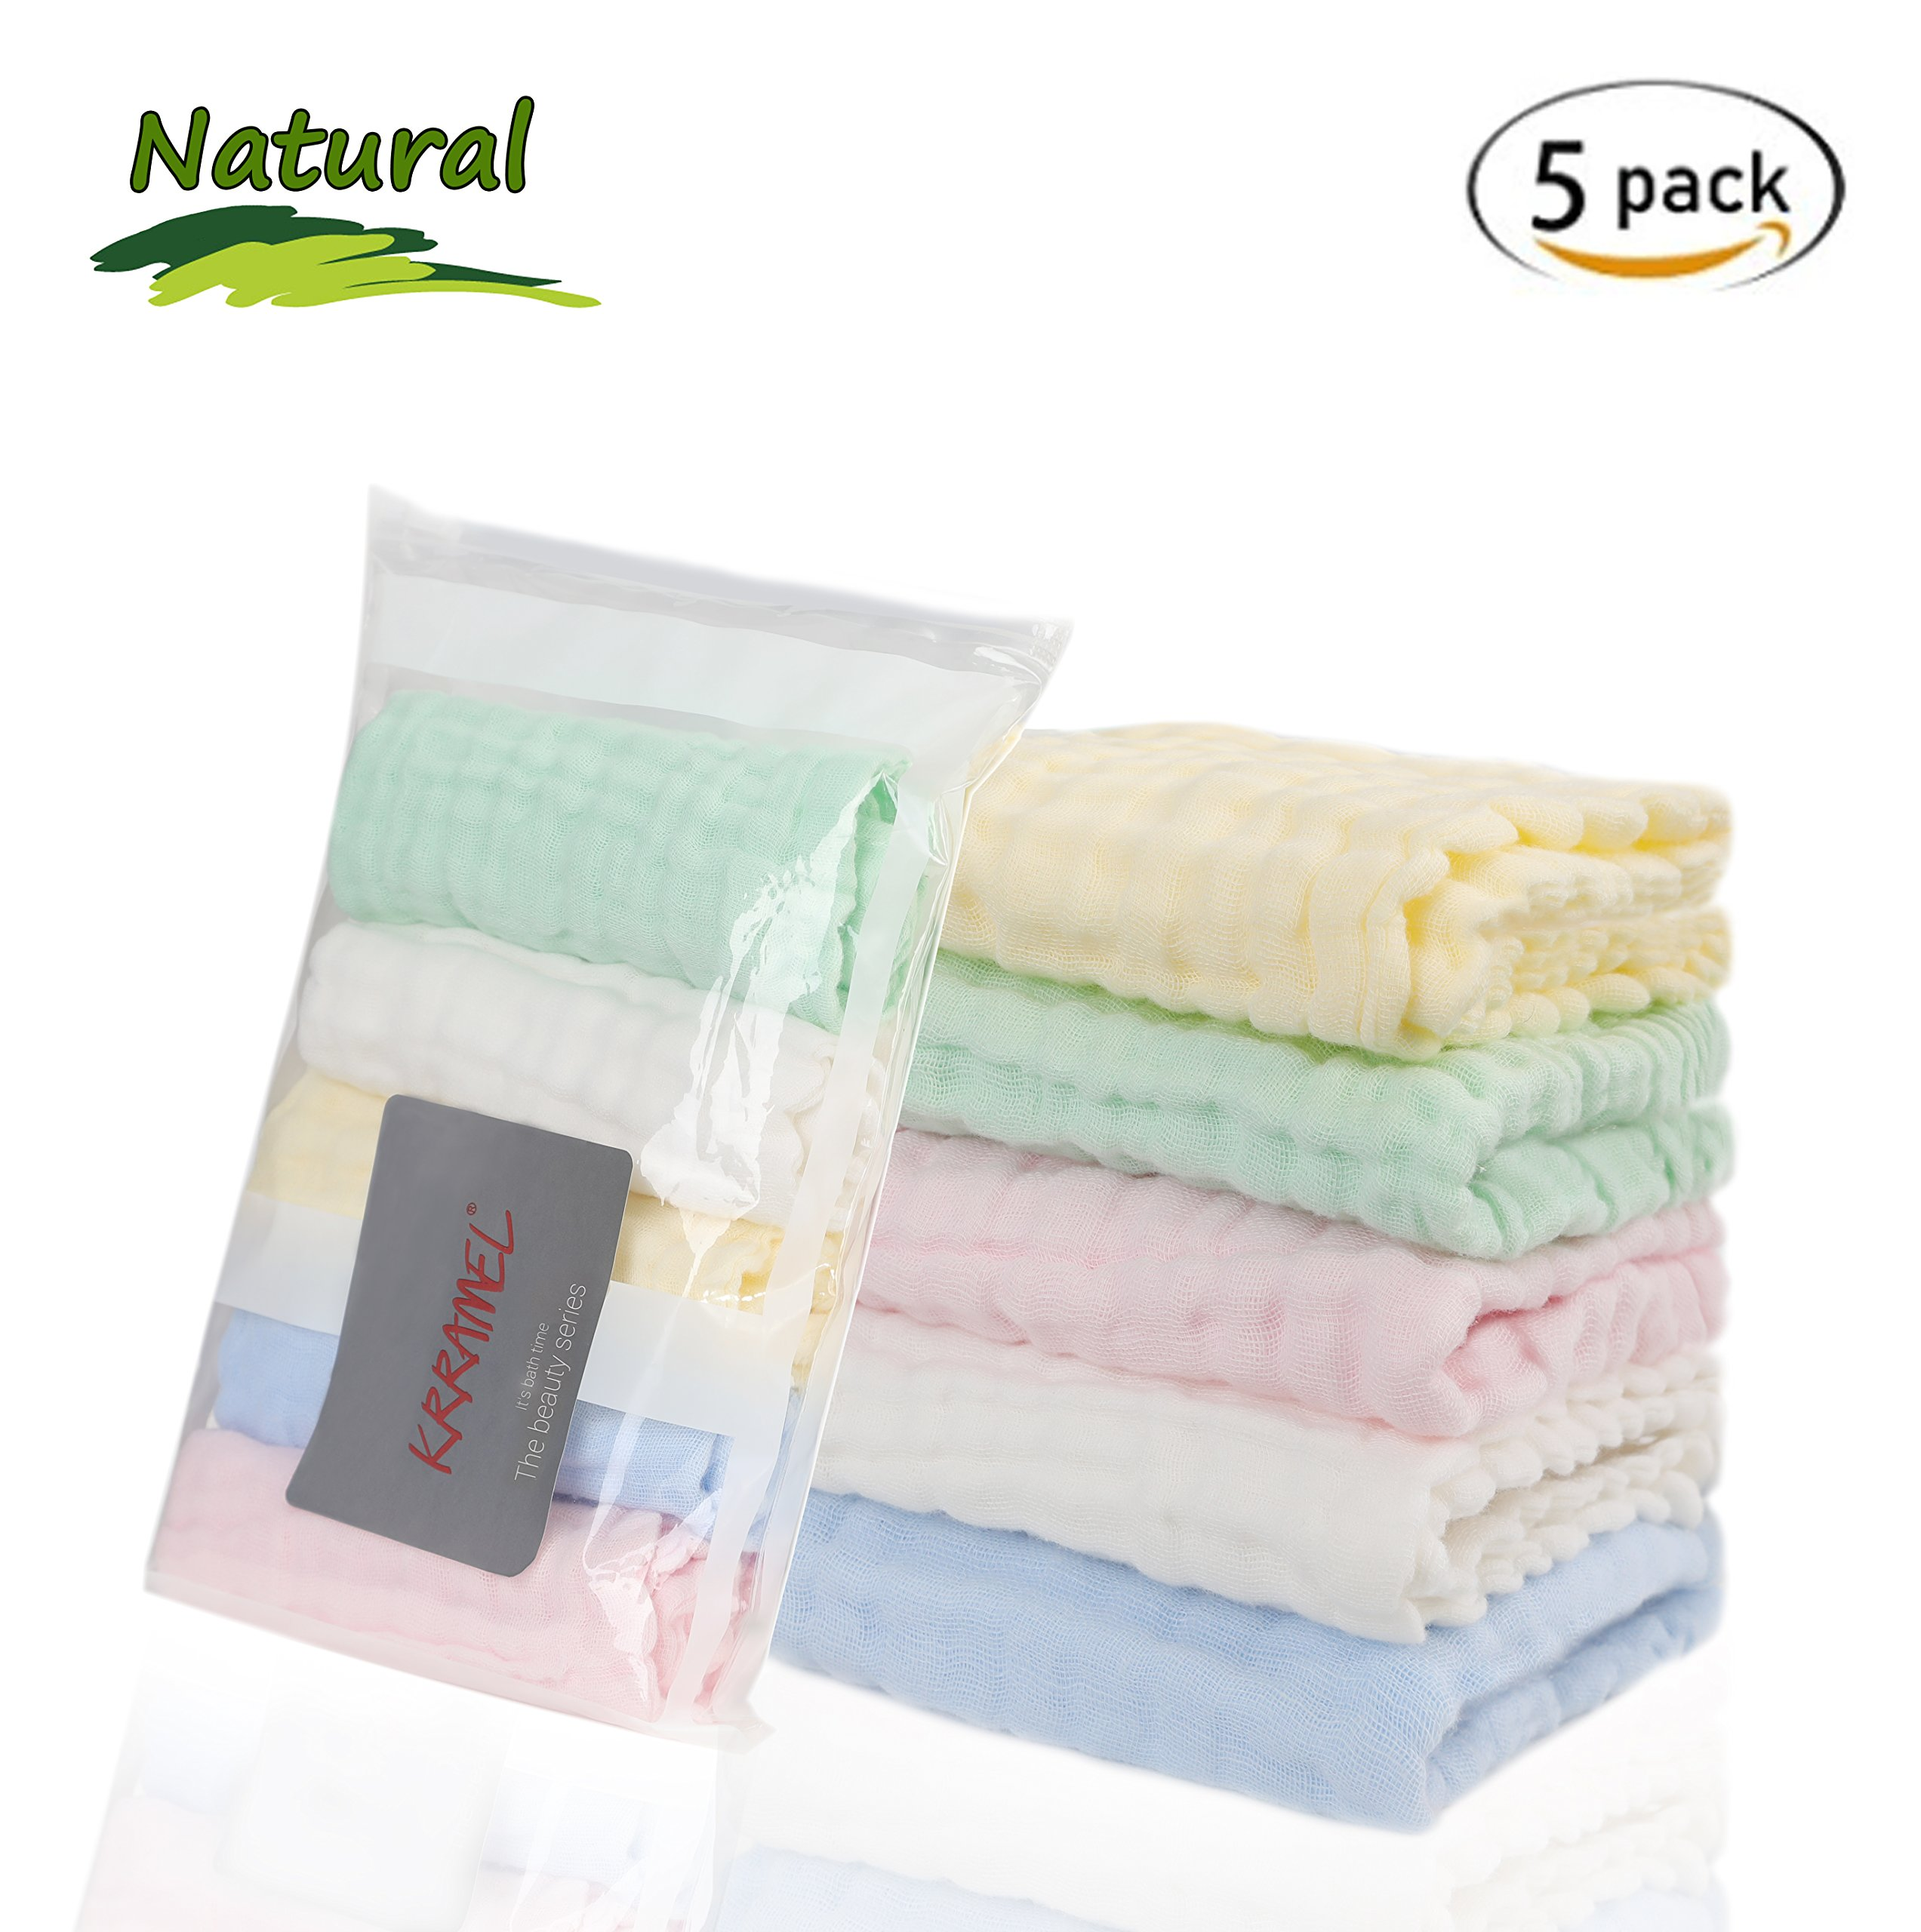 Baby Wash Cloth for Newborn with Sensitive Skin Caiery 1pcs Baby Washcloths Soft 70x140cm Shower Gift for Baby Registry 28 x 55 inch Bamboo Cotton Baby Muslin Washcloth